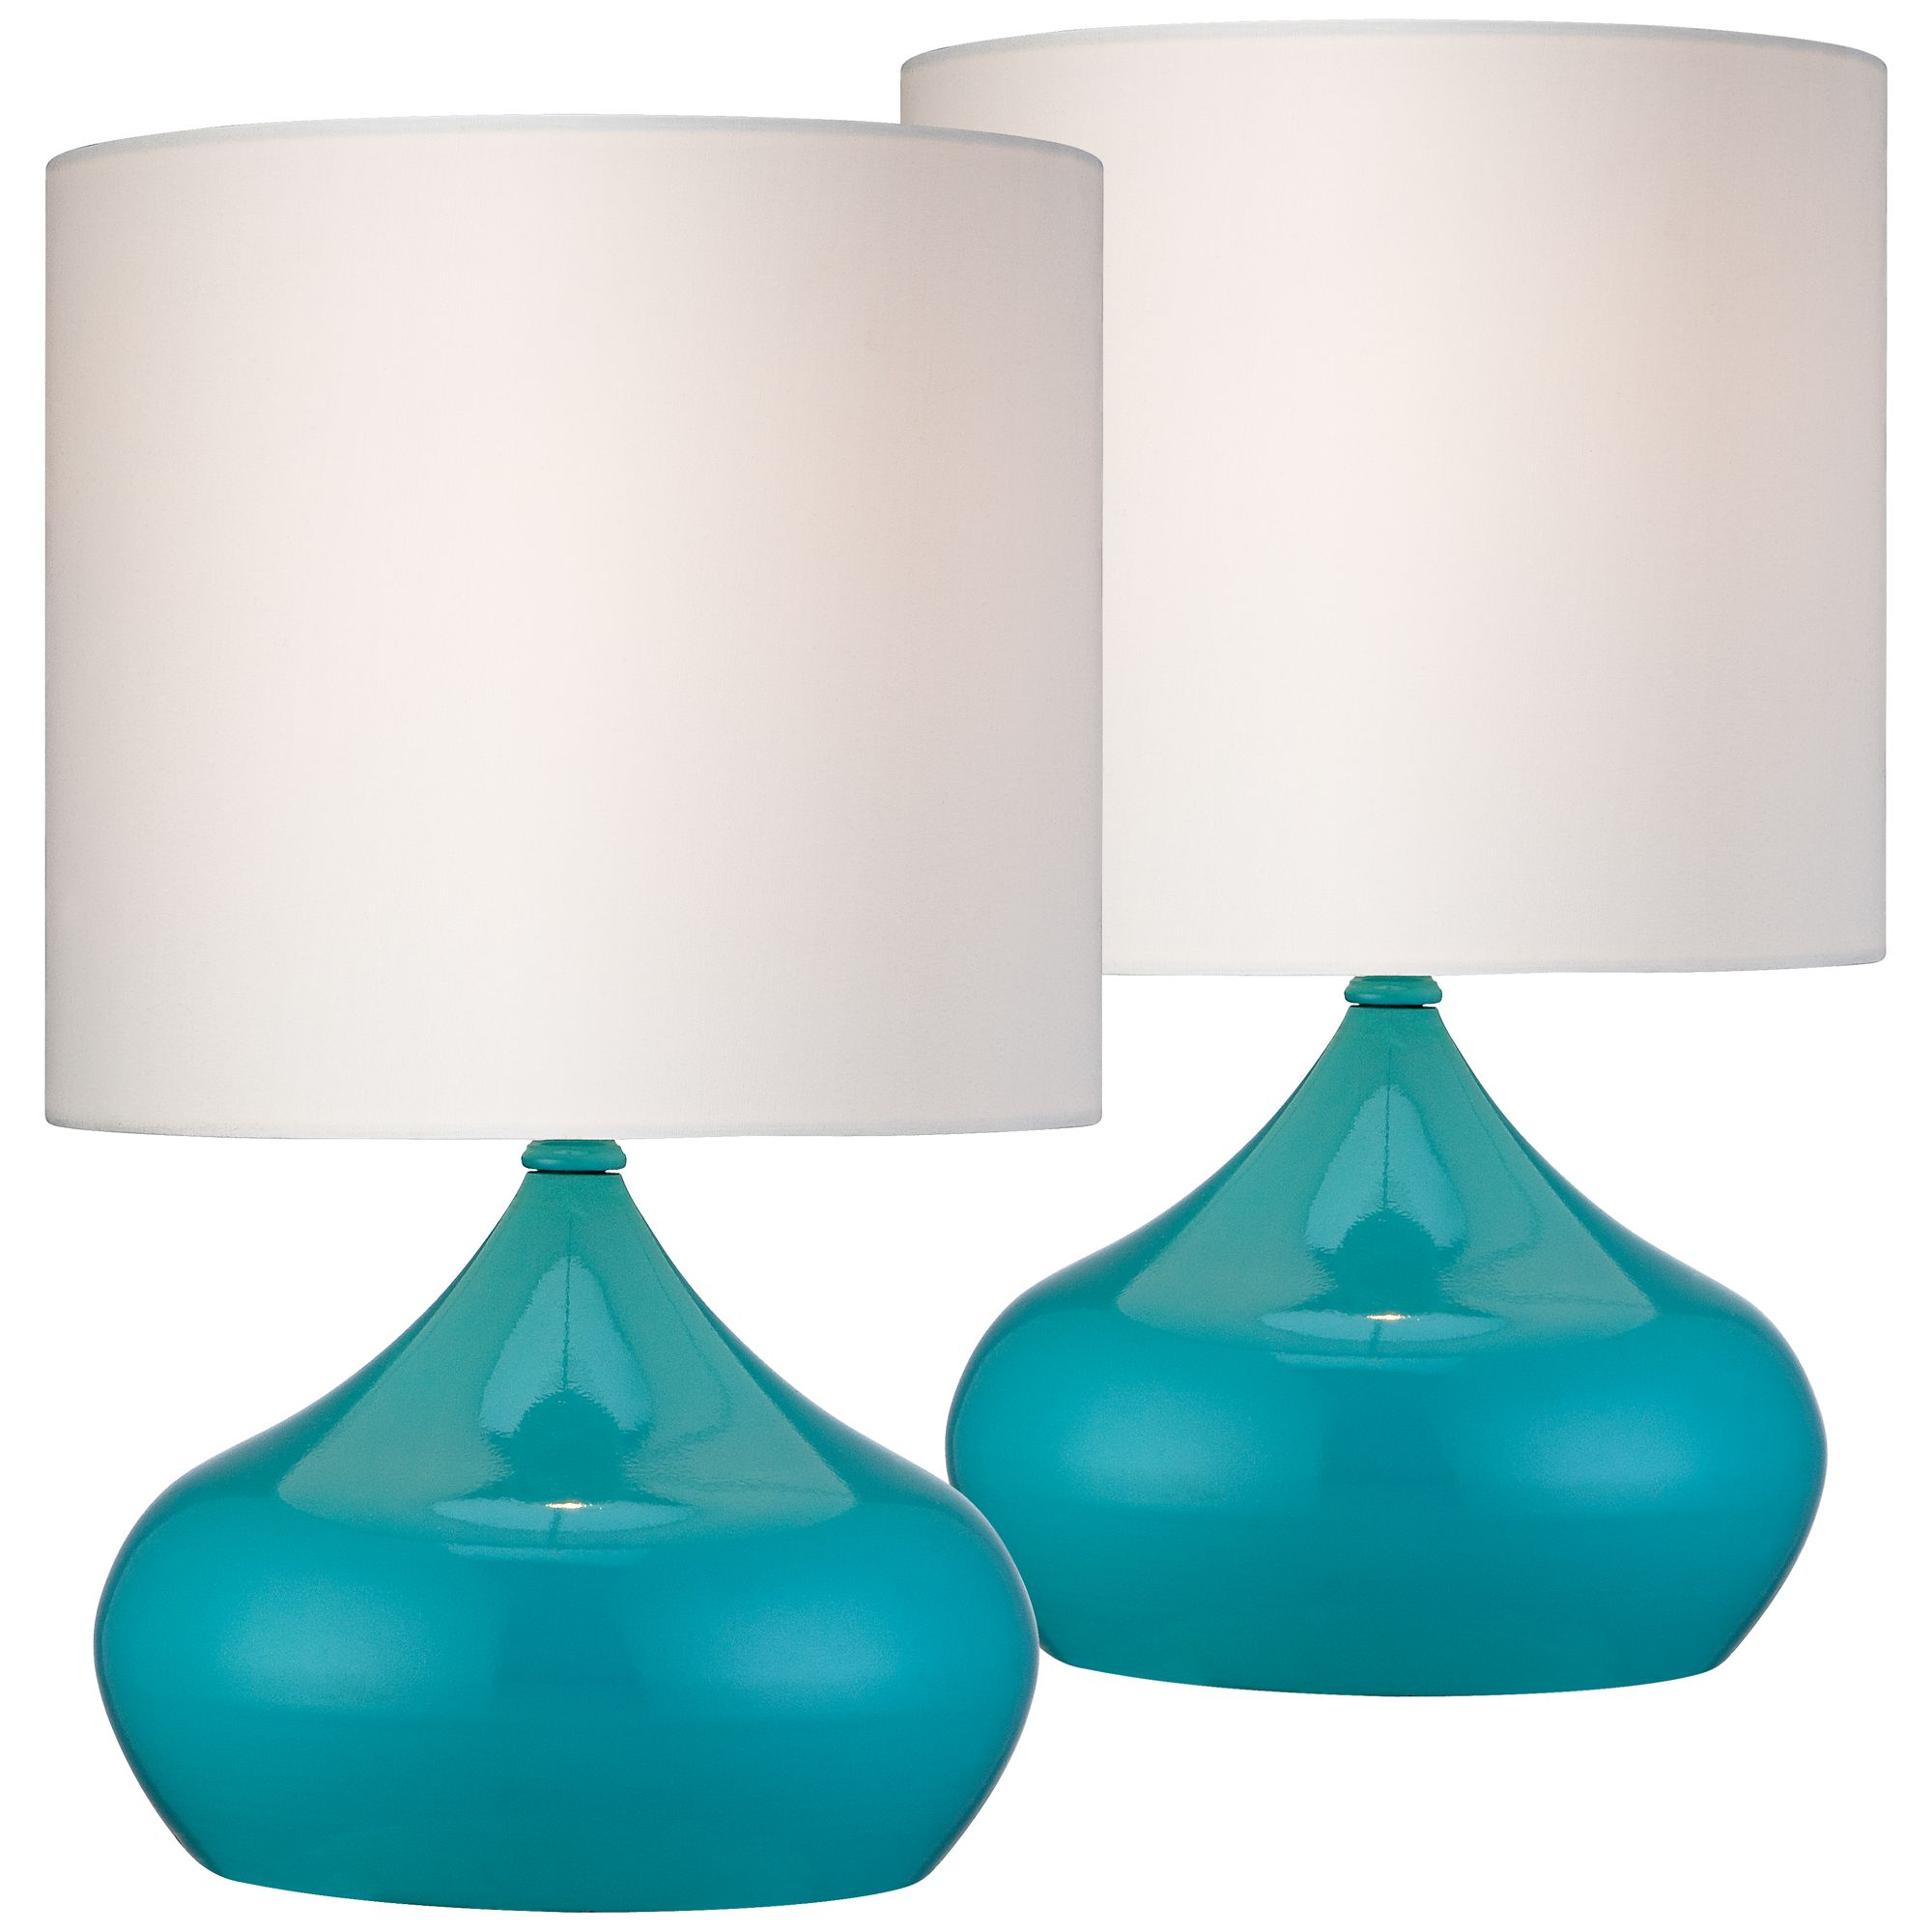 "360 Lighting Mid Century Modern Accent Table Lamps 14 3/4"" High Set of 2 Teal Blue Steel White Drum Shade for Bedroom Bedside"